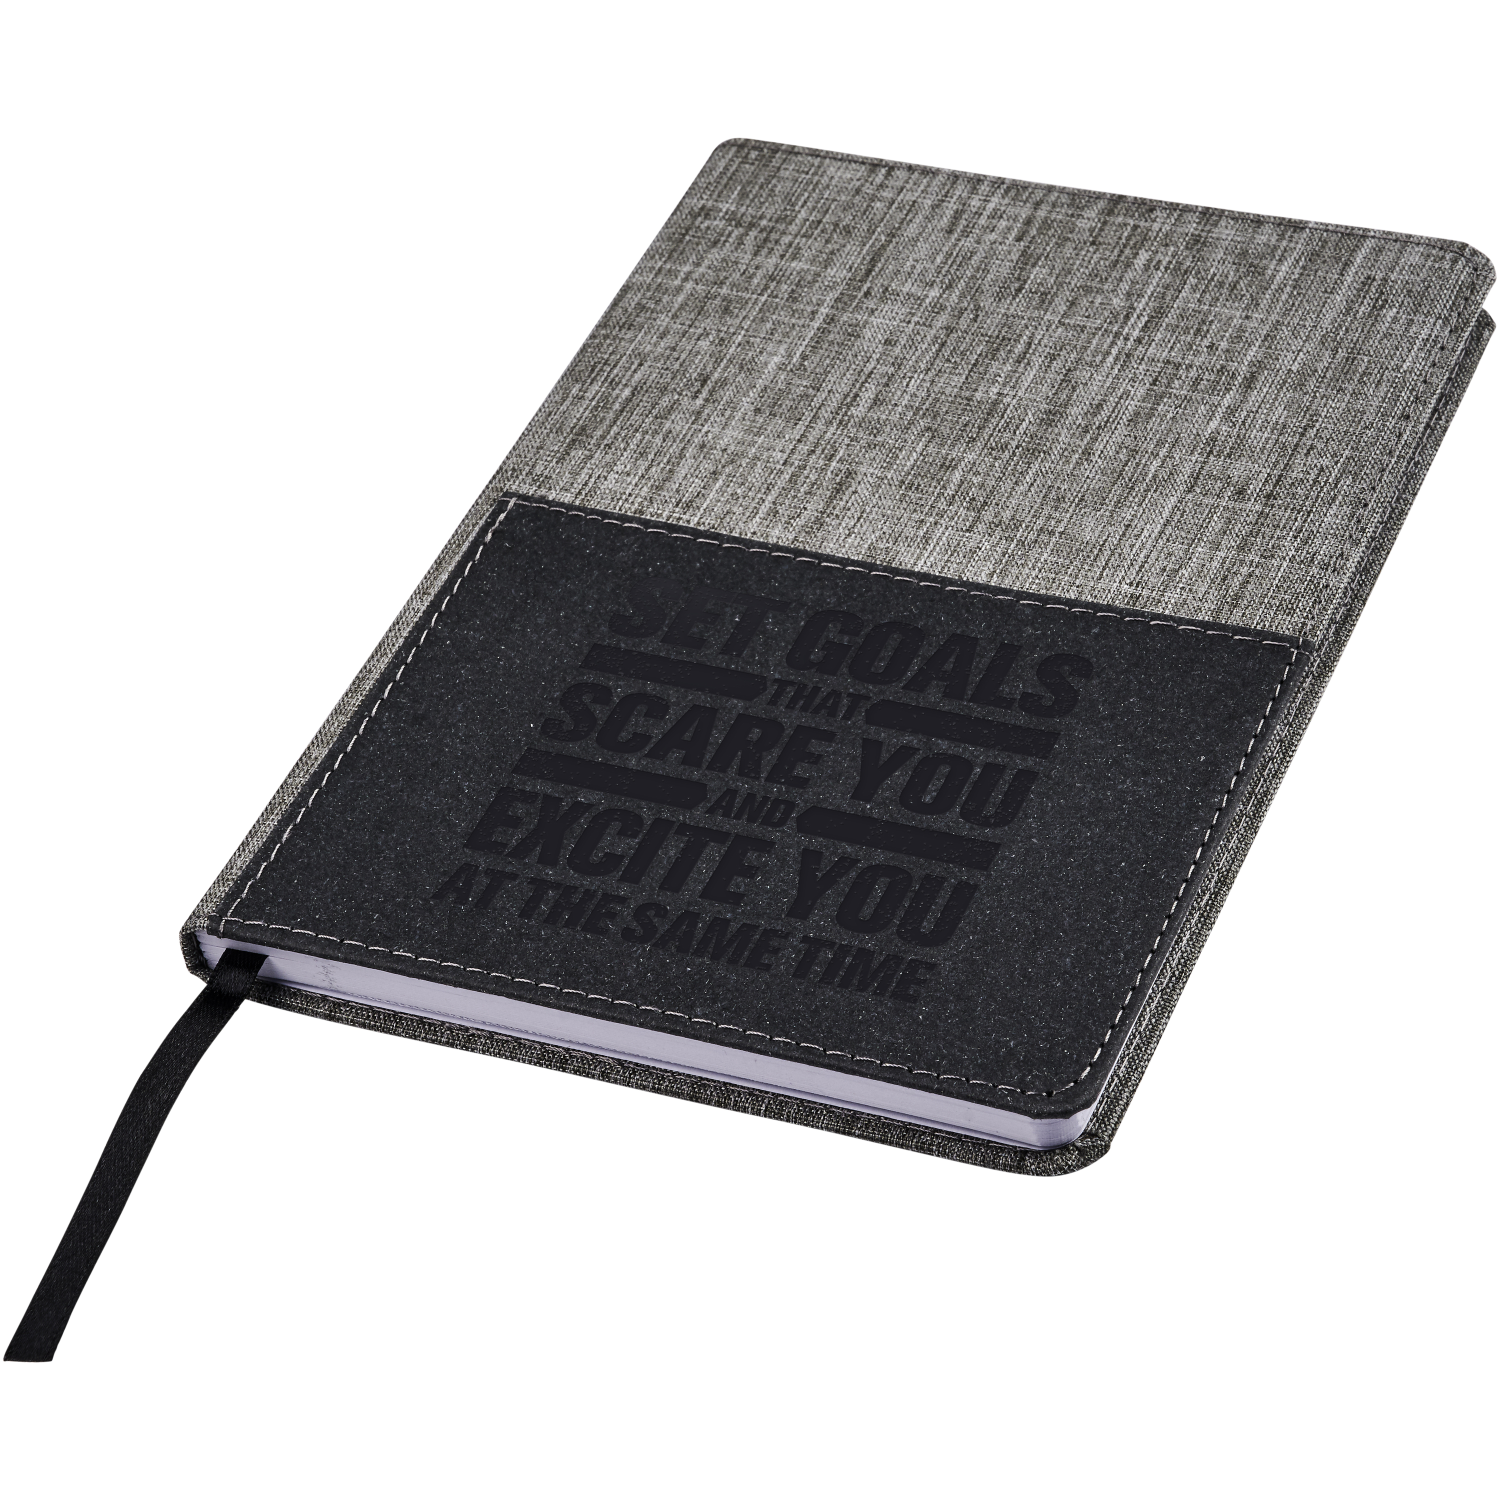 Mera Rpet A5 Reference Notebook With Front Pocket